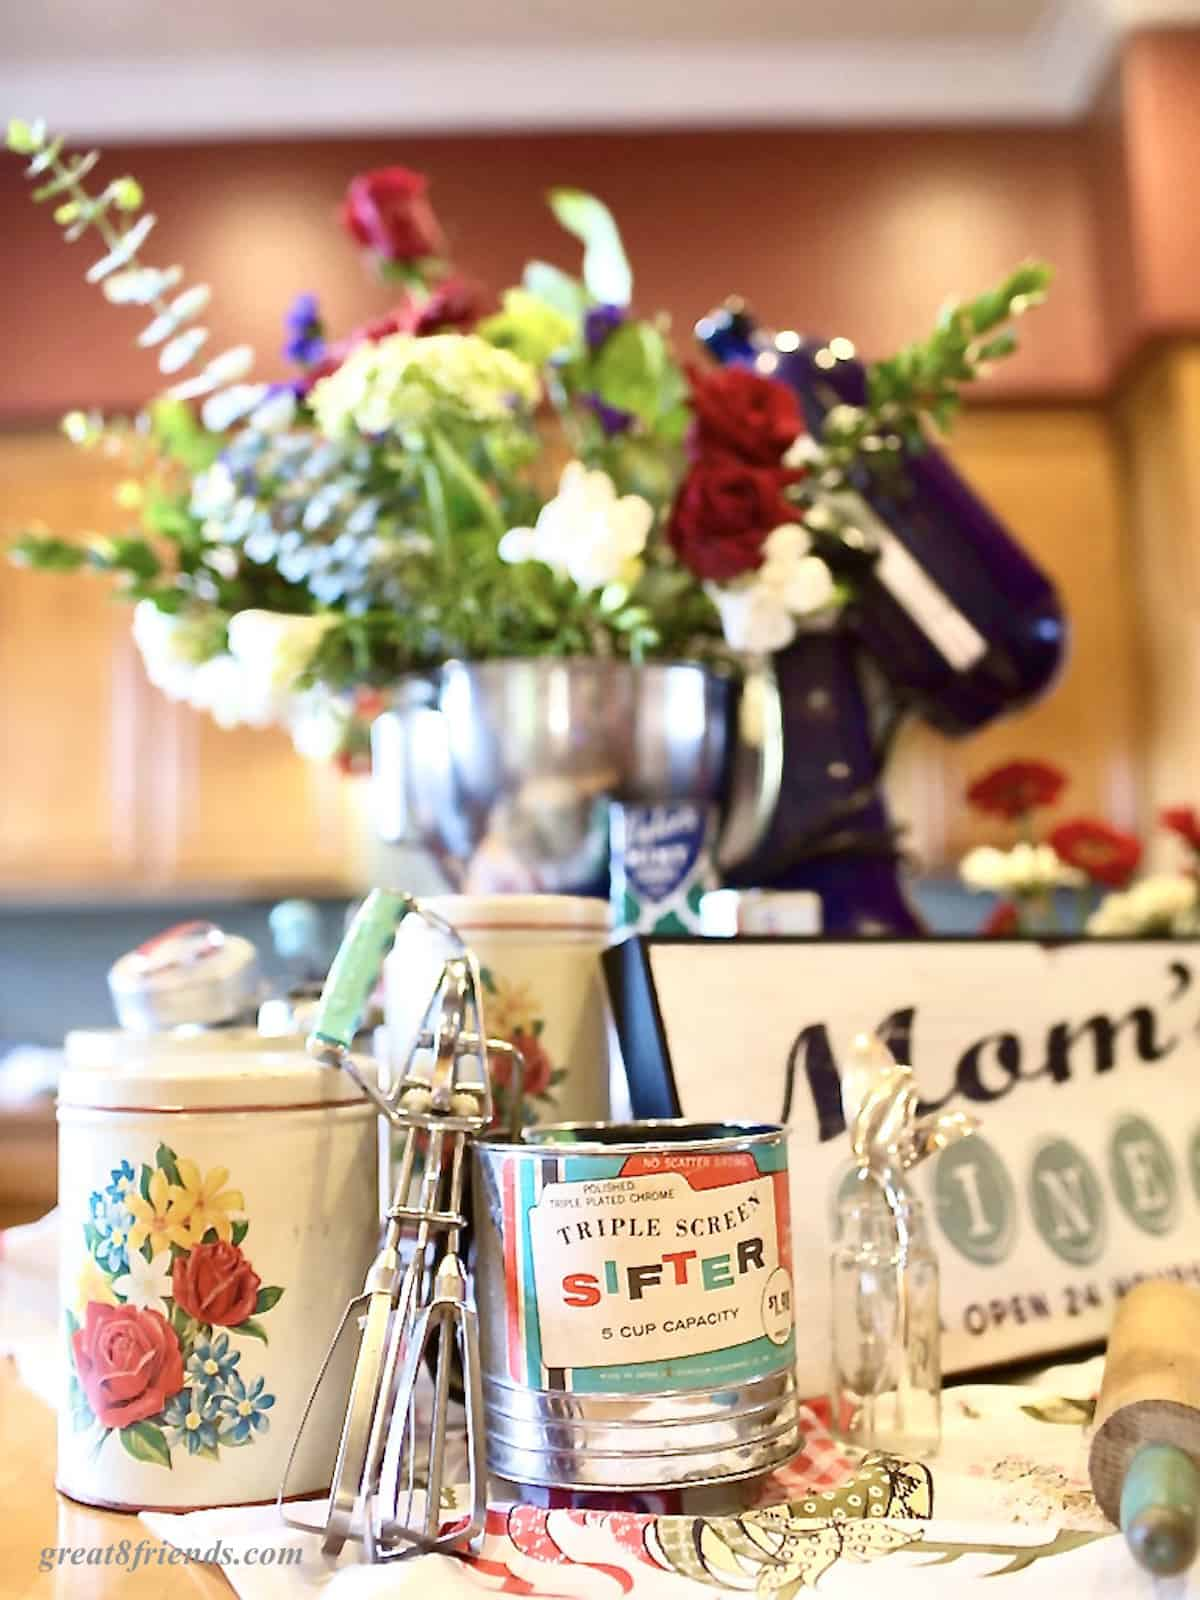 An island kitchen with several kitchen decorations like a bouquet of flowers in a mixing bowl, a sifter, a sign that says Mom's kitchen, and a rolling pin.